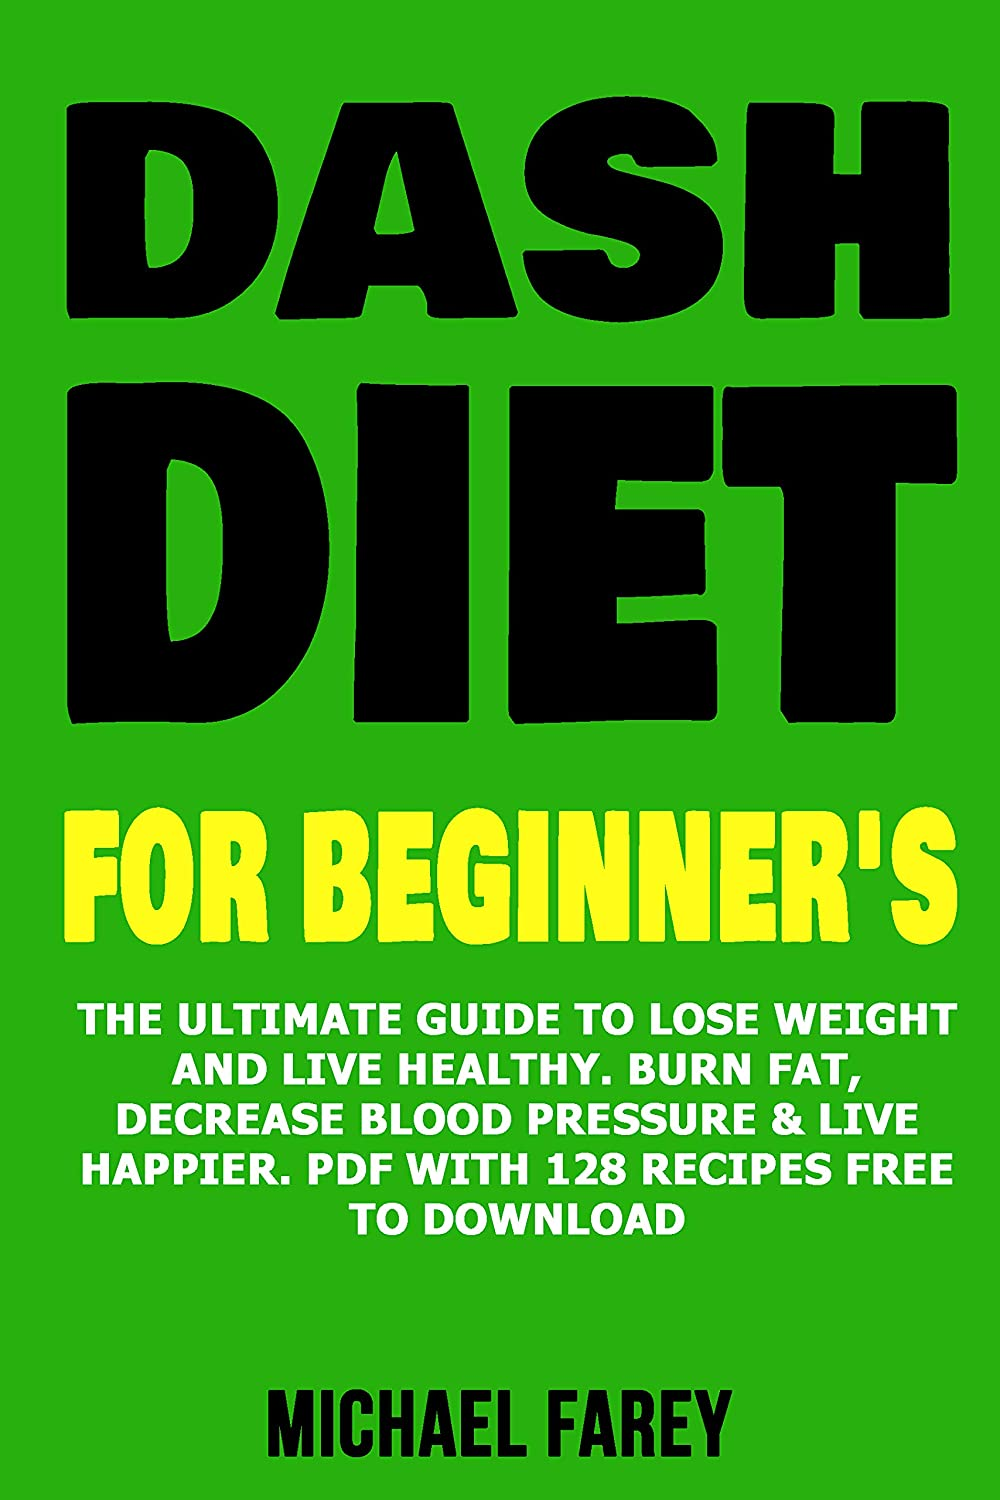 Weight free pdf lose healthy to eating plan